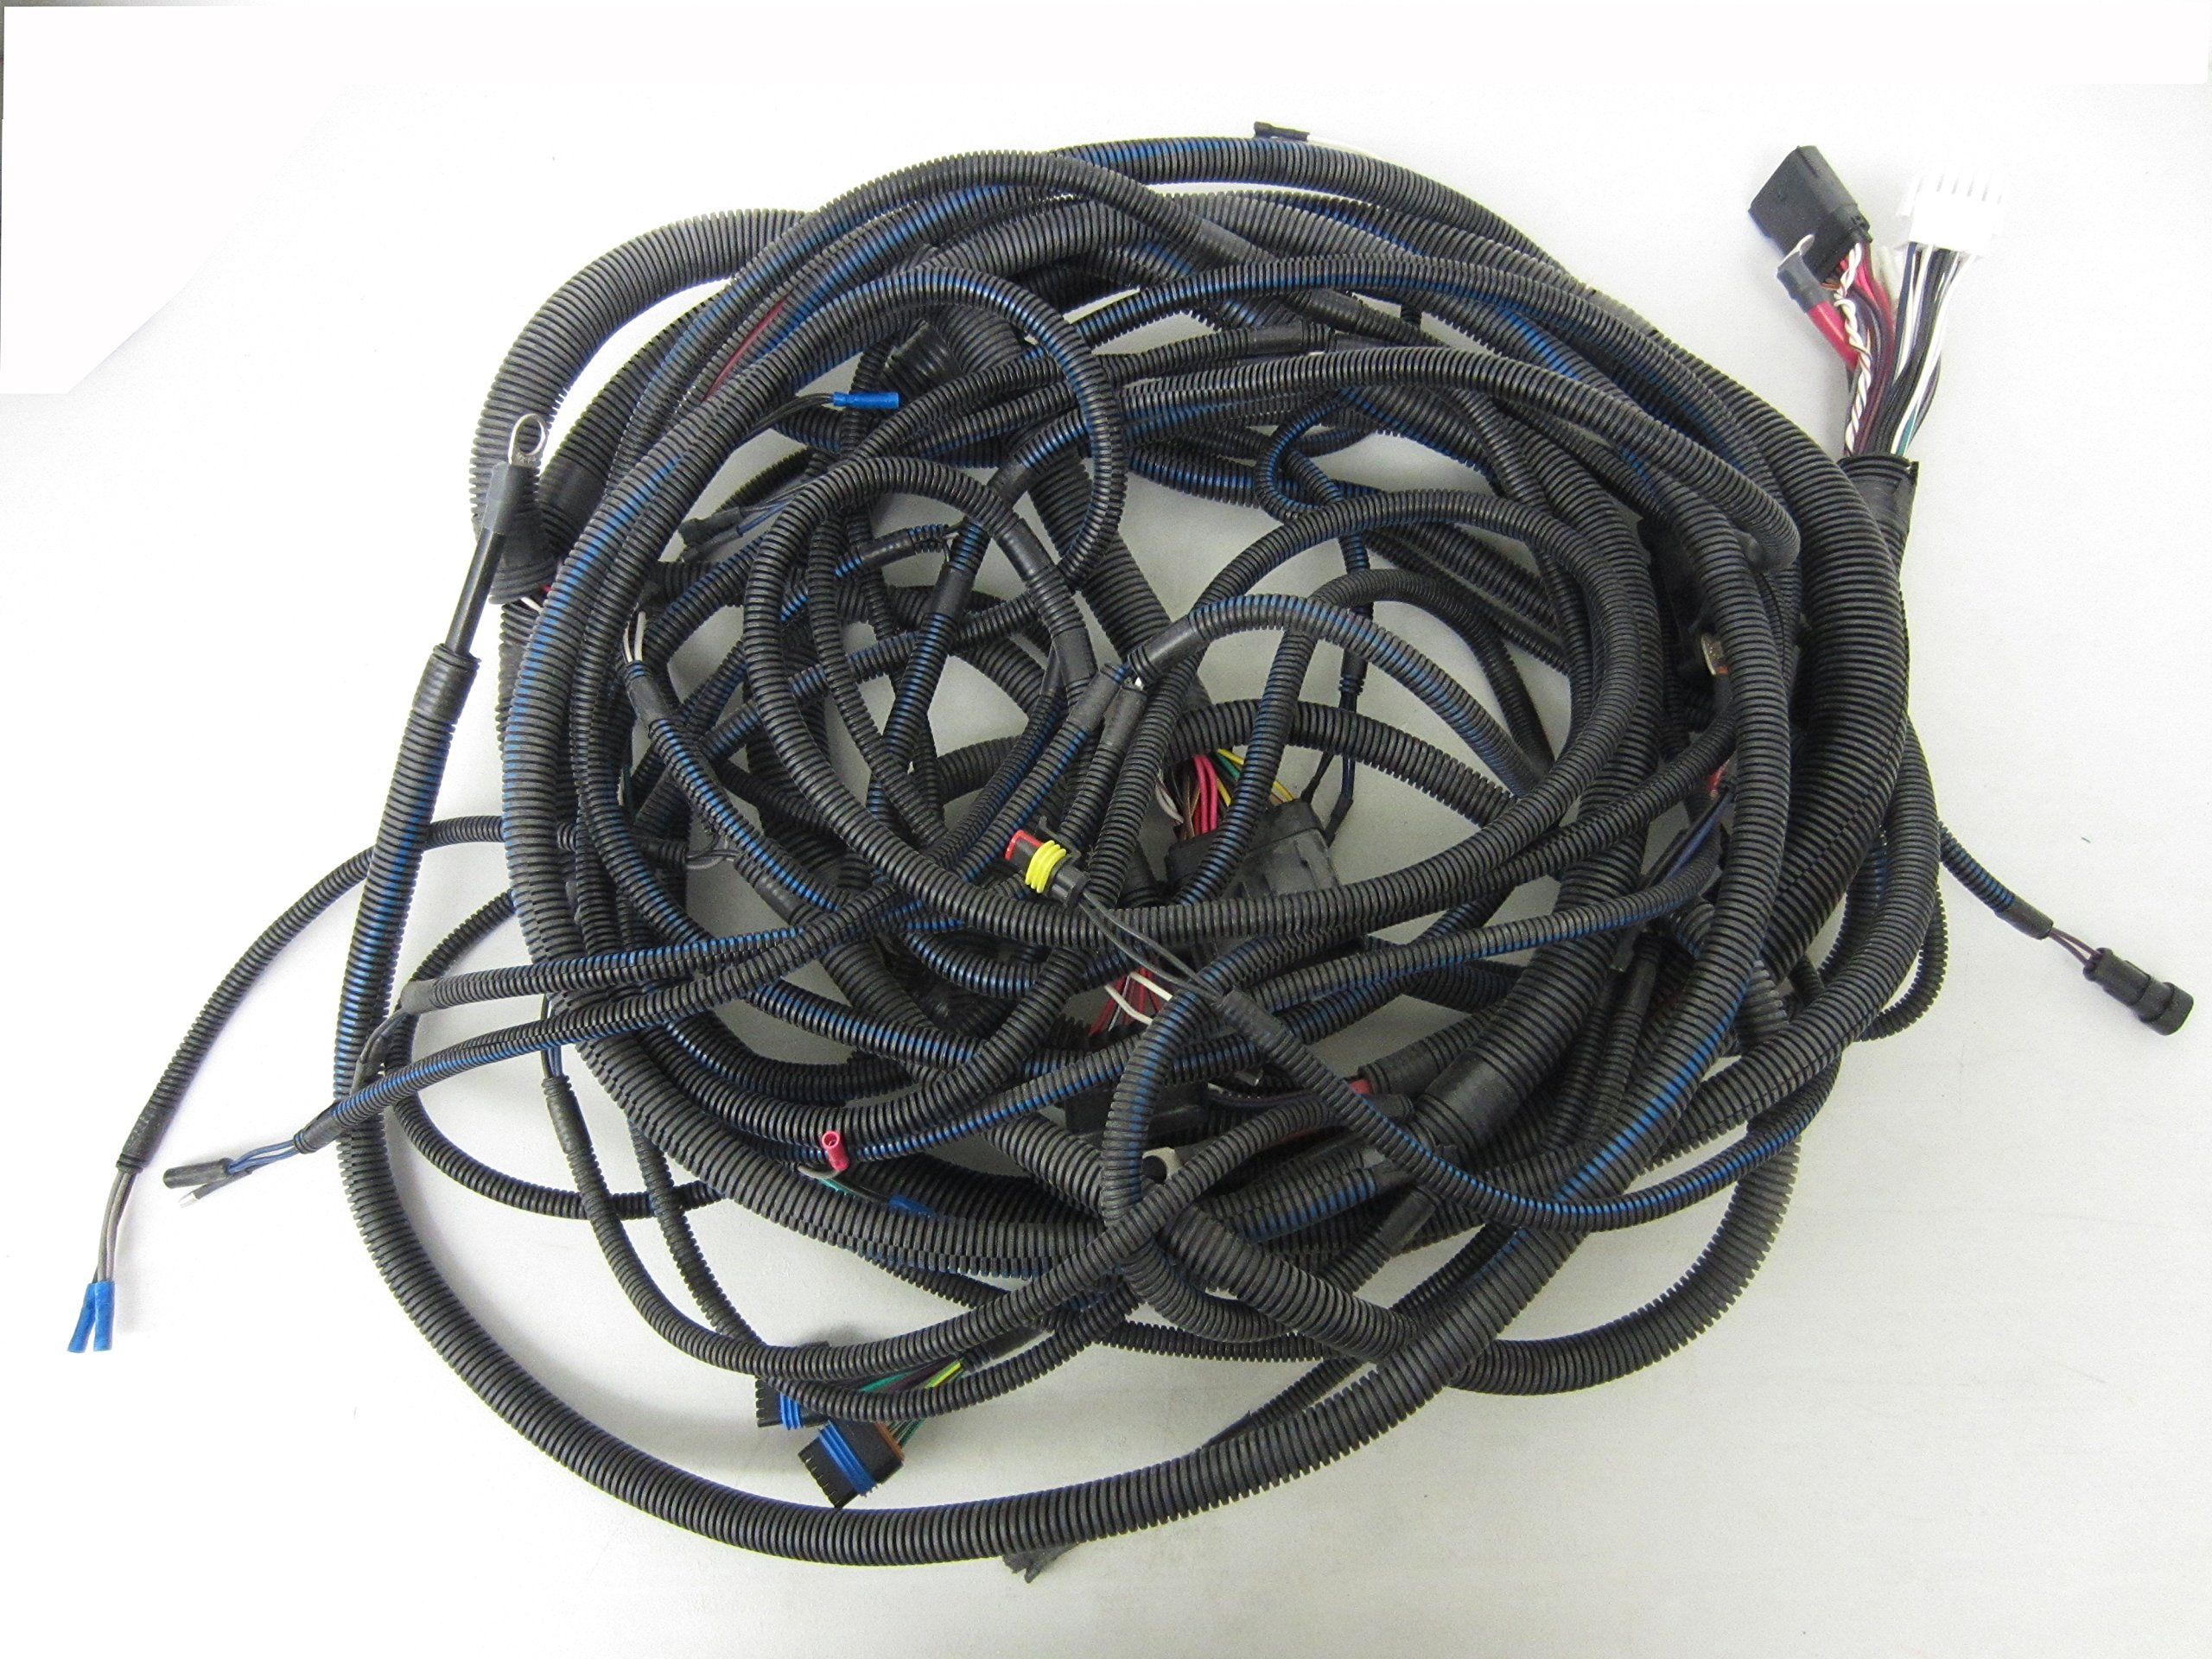 Sea-Doo New OEM Sport Boat Electrical Accessories Wiring Harness Challenger Wake by Sea-Doo